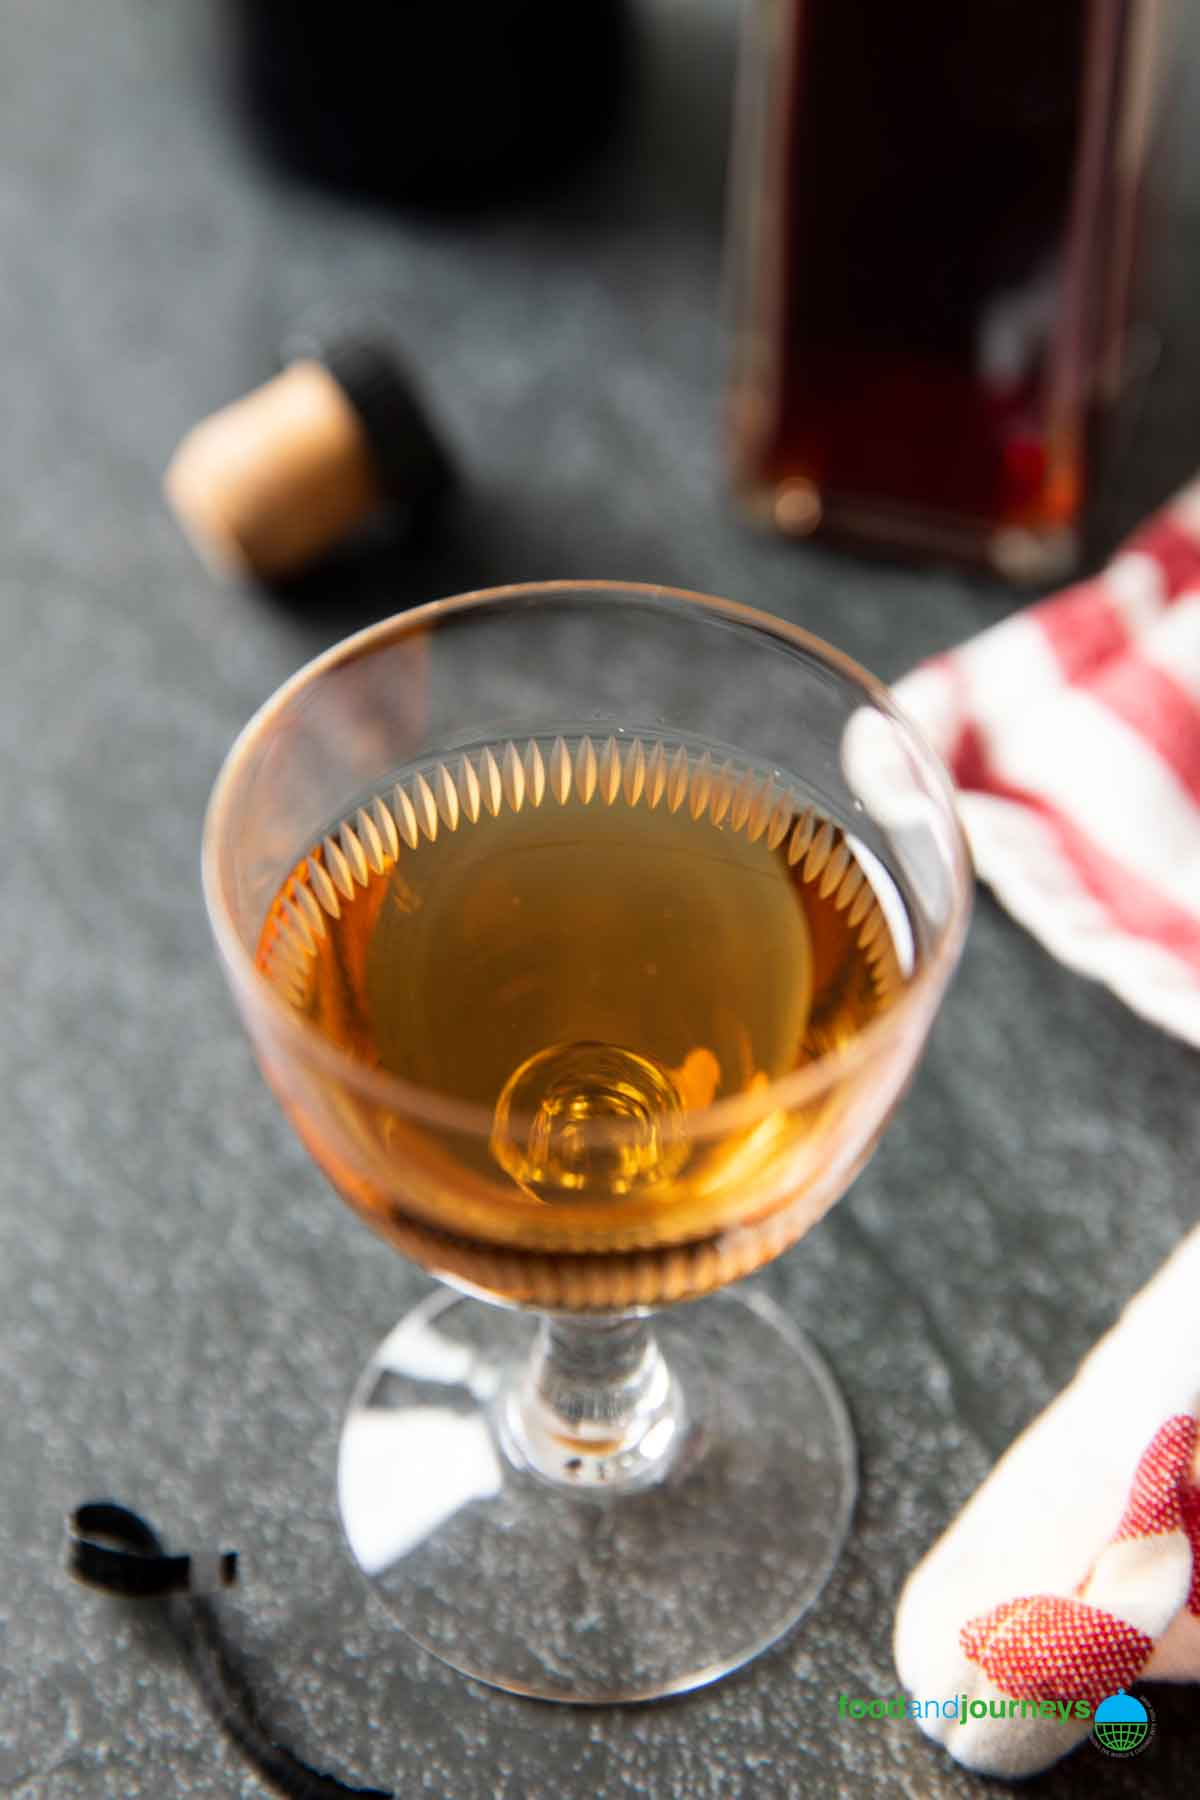 Sherry wine poured into a small glass, with a bottlee of red wine vinegar in the background.